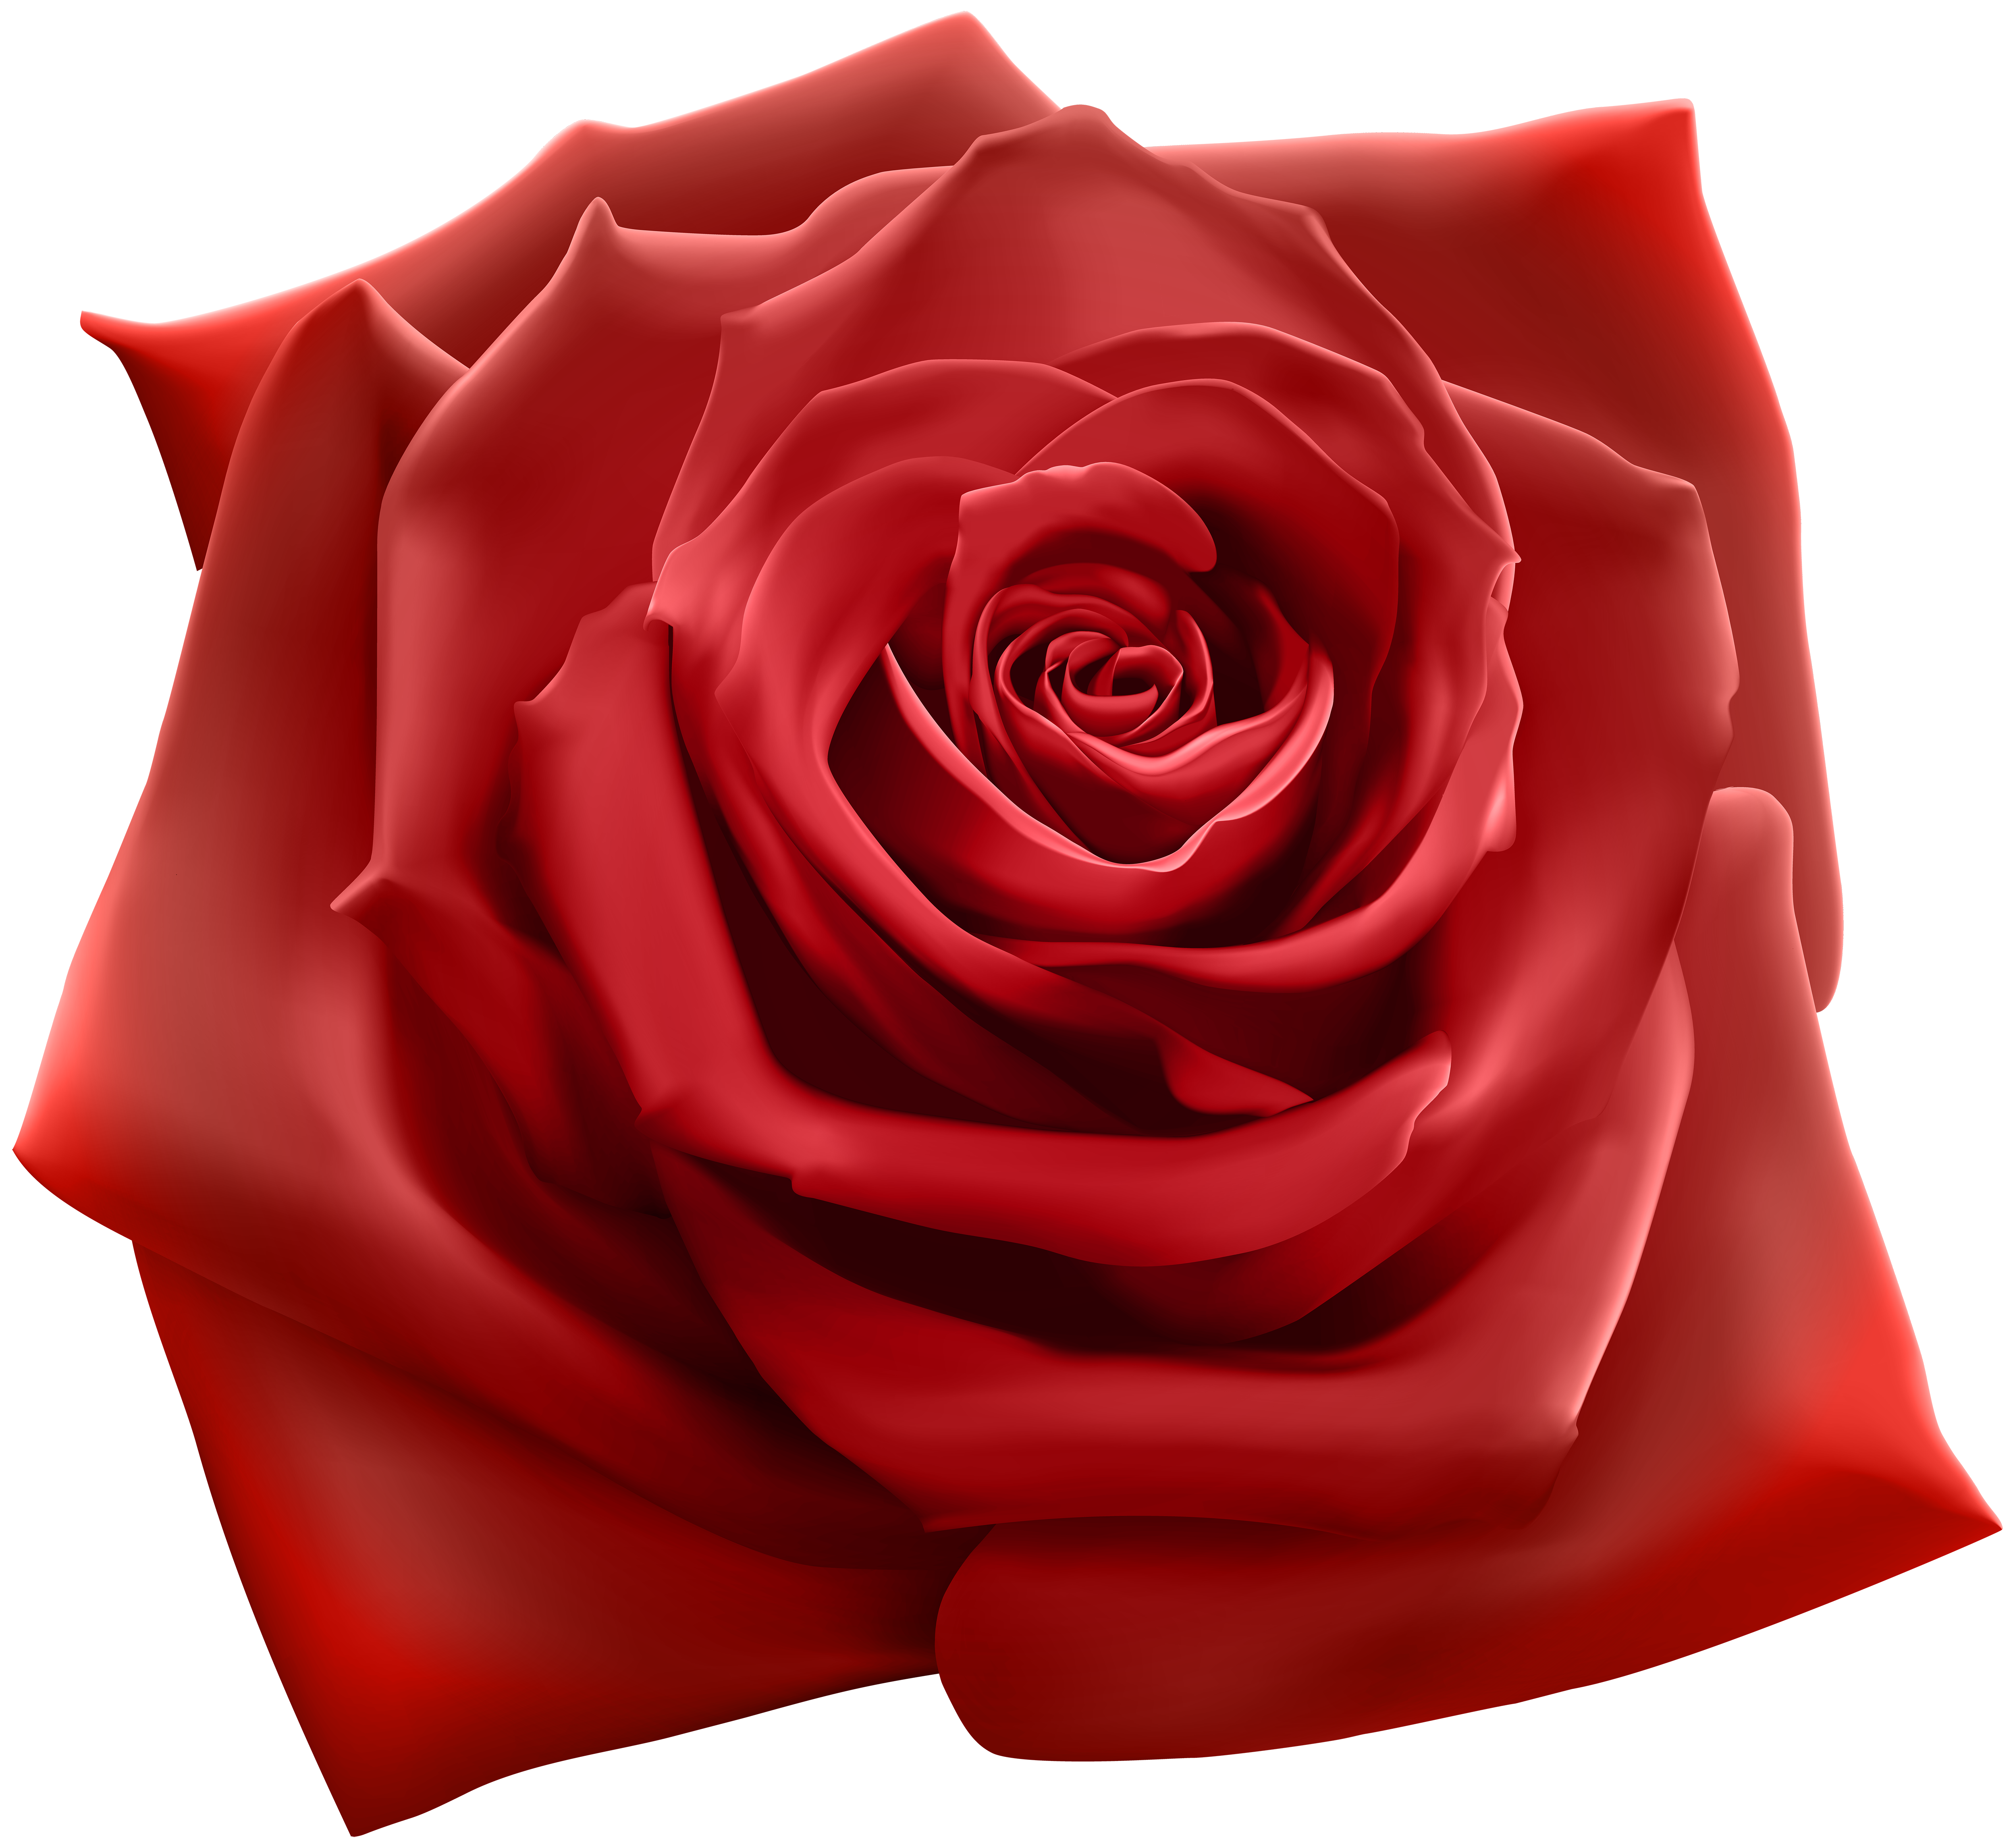 Red rose png image. Clipart roses high resolution